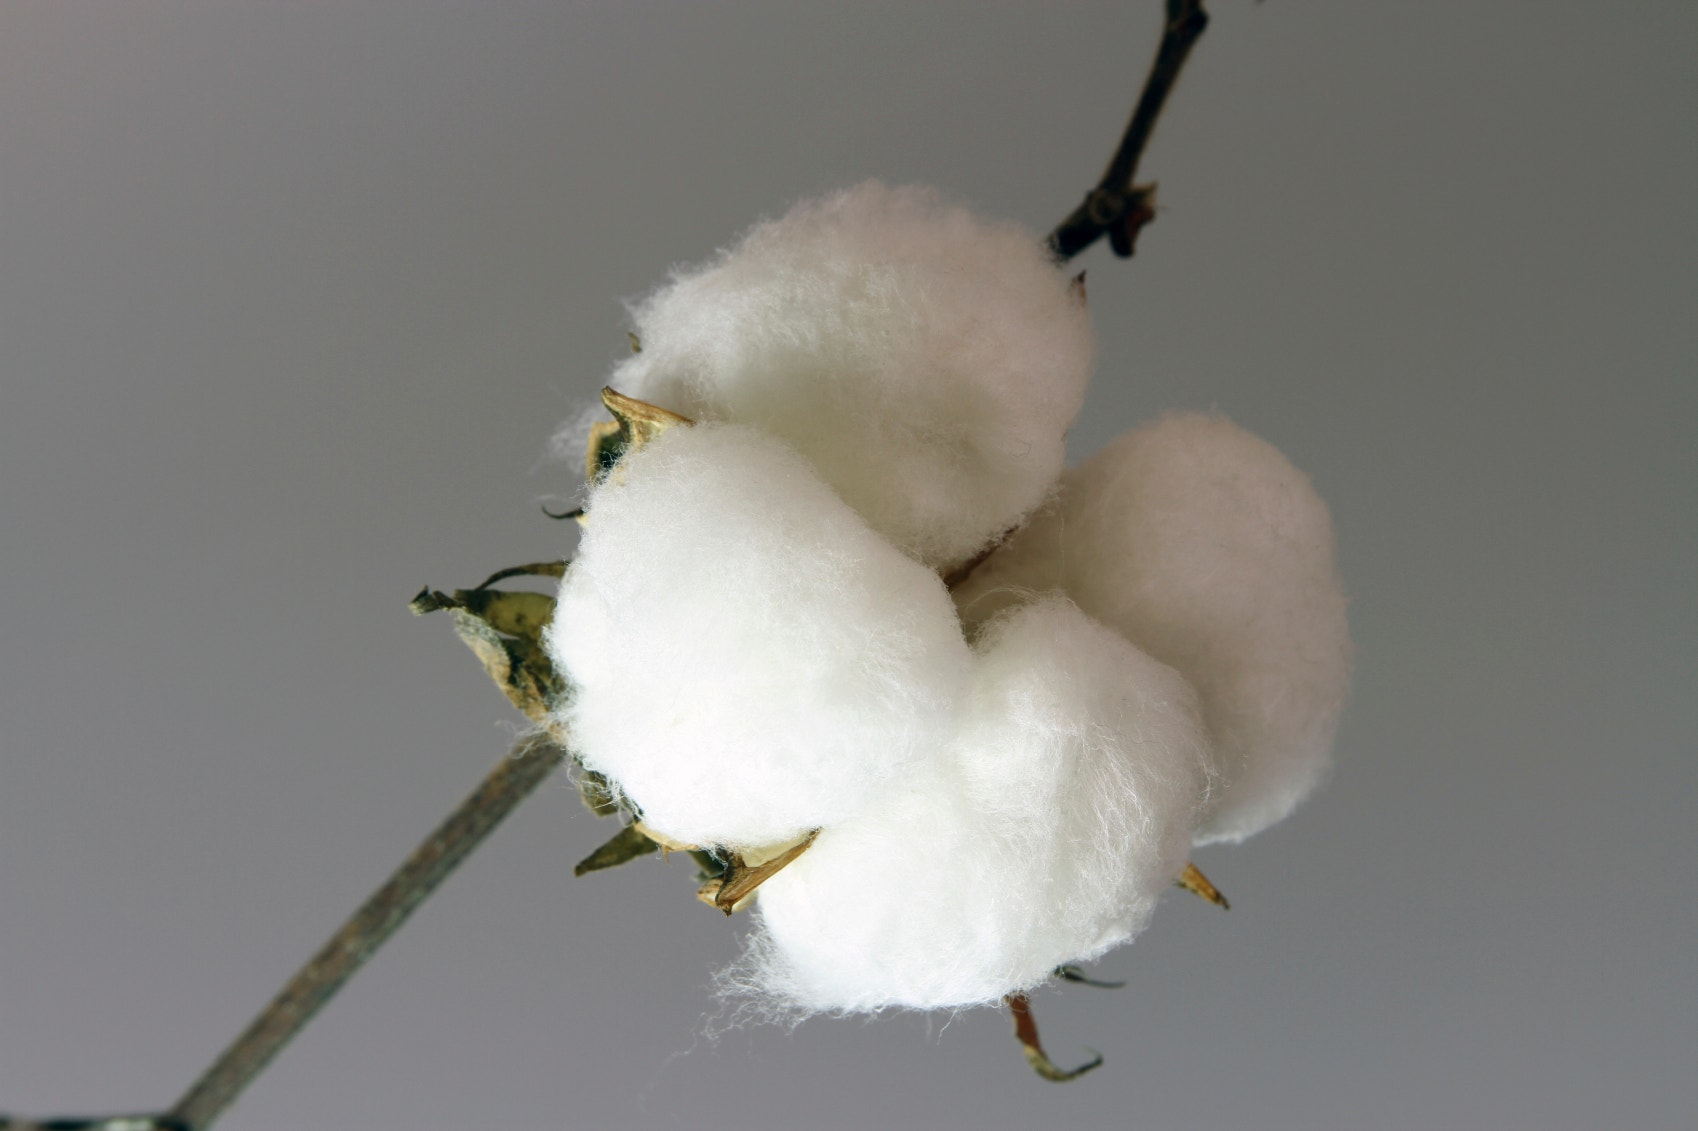 cotton harvest 3